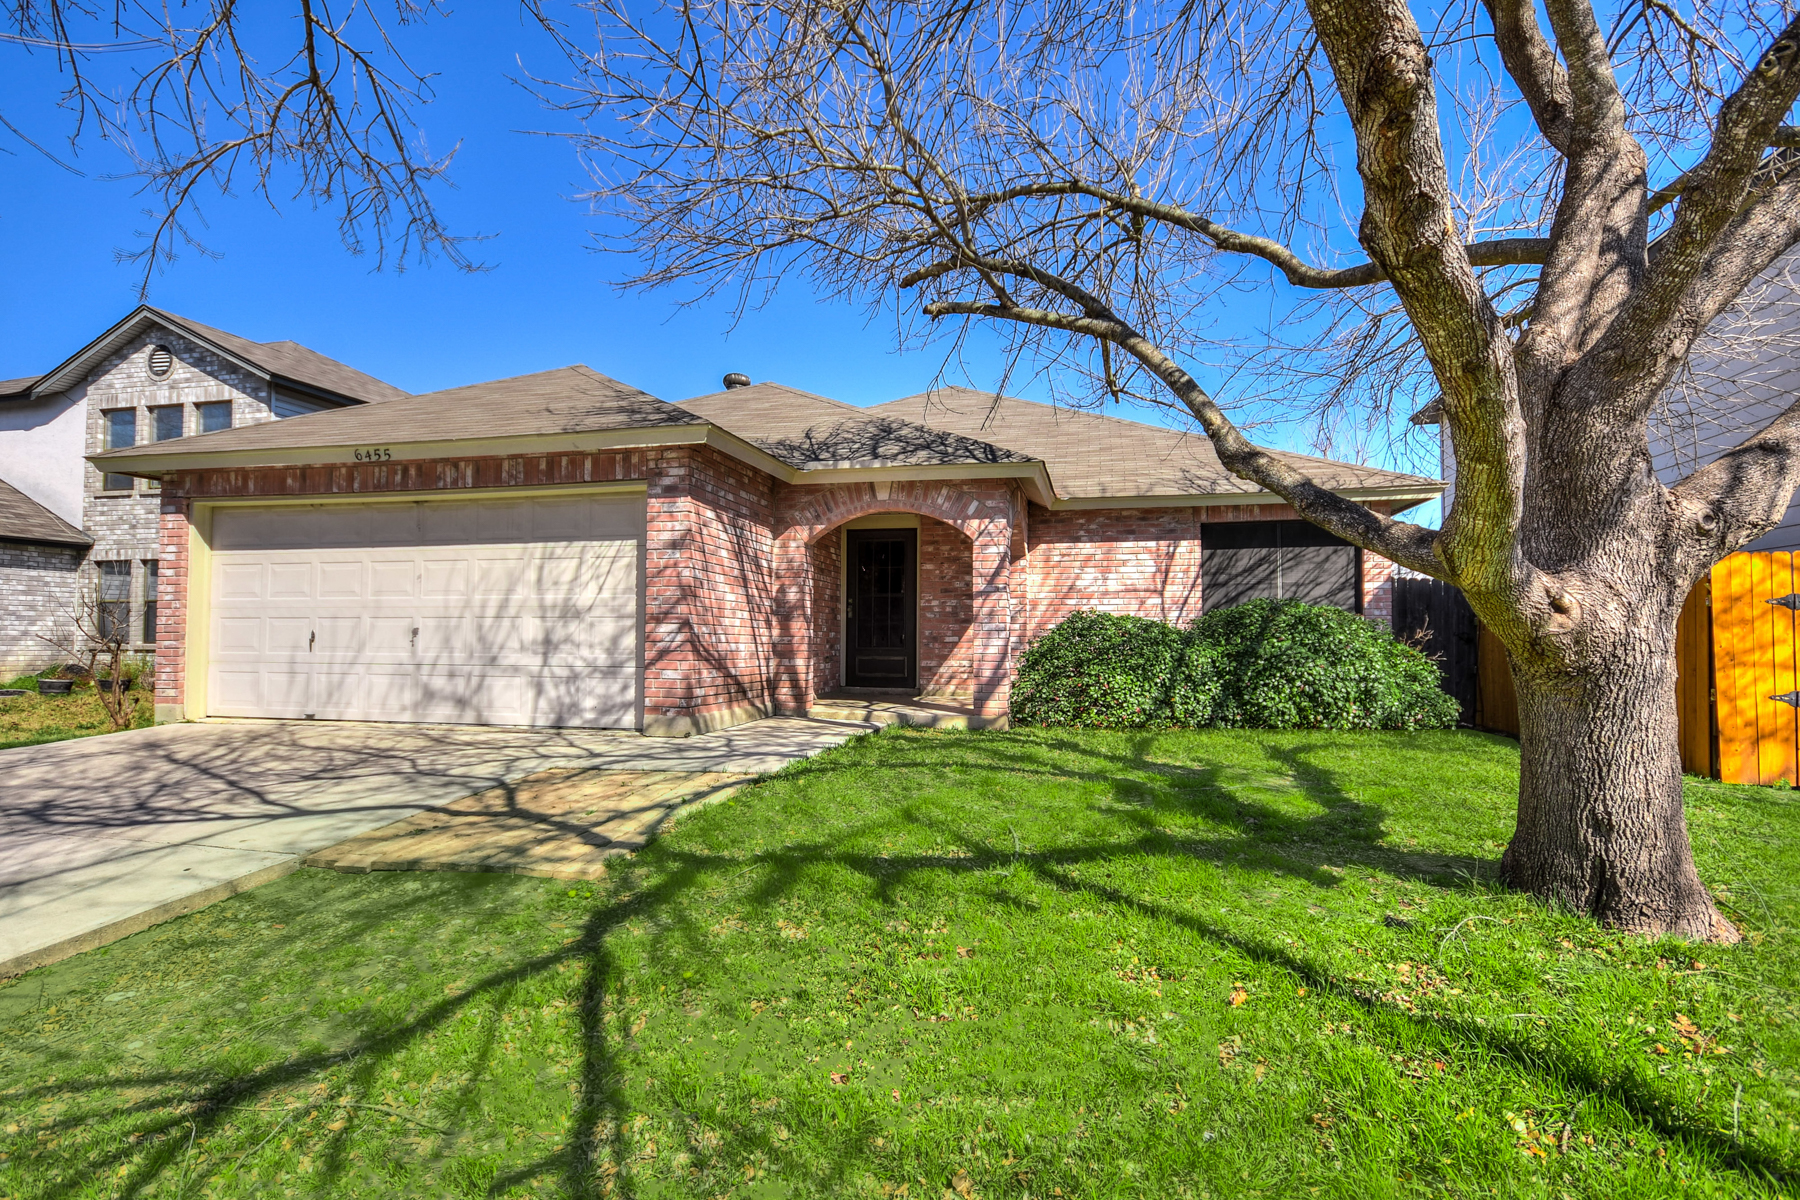 Single Family Home for Sale at Spacious Home in Meadow Brook 6455 Beech Trail Dr Converse, Texas 78109 United States